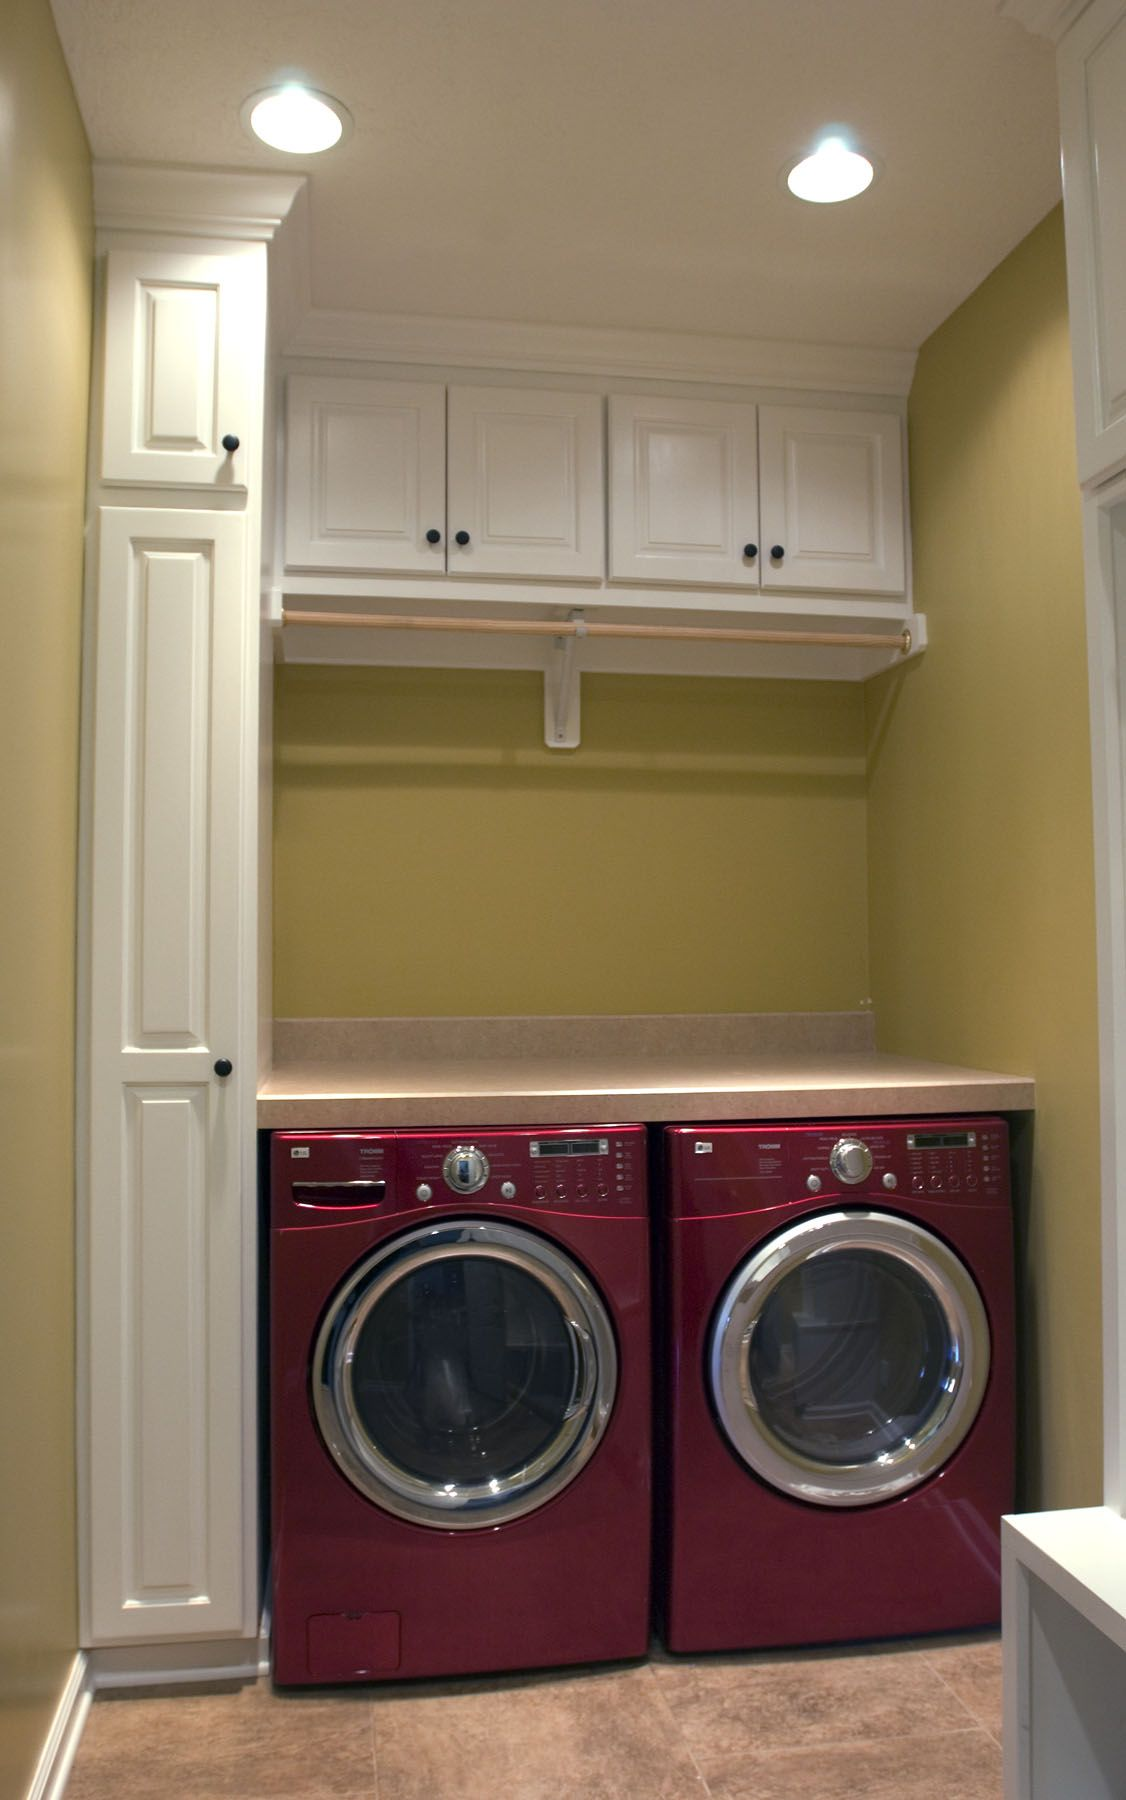 Small laundry rooms enlarged laundry room new mudroom lockers case - Washing machine for small spaces gallery ...